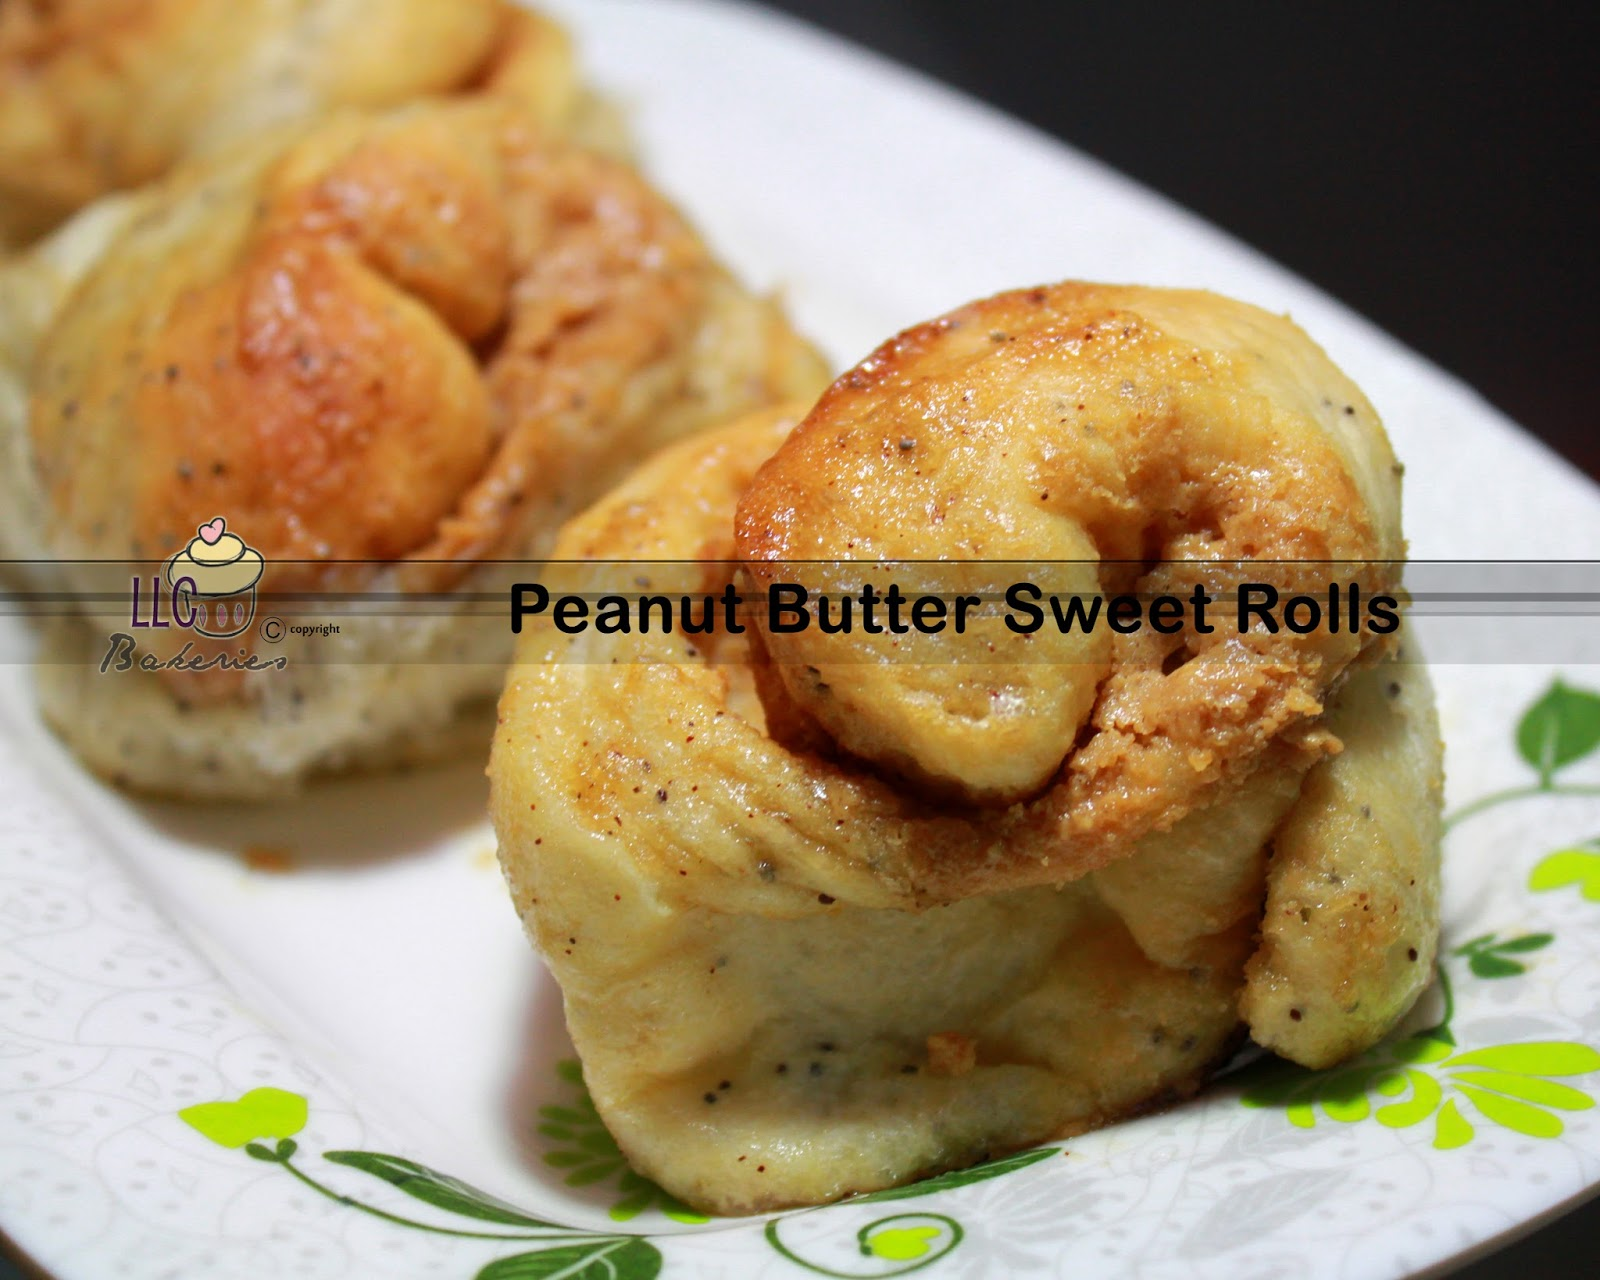 LLC Bakeries: Peanut Butter Sweet Rolls